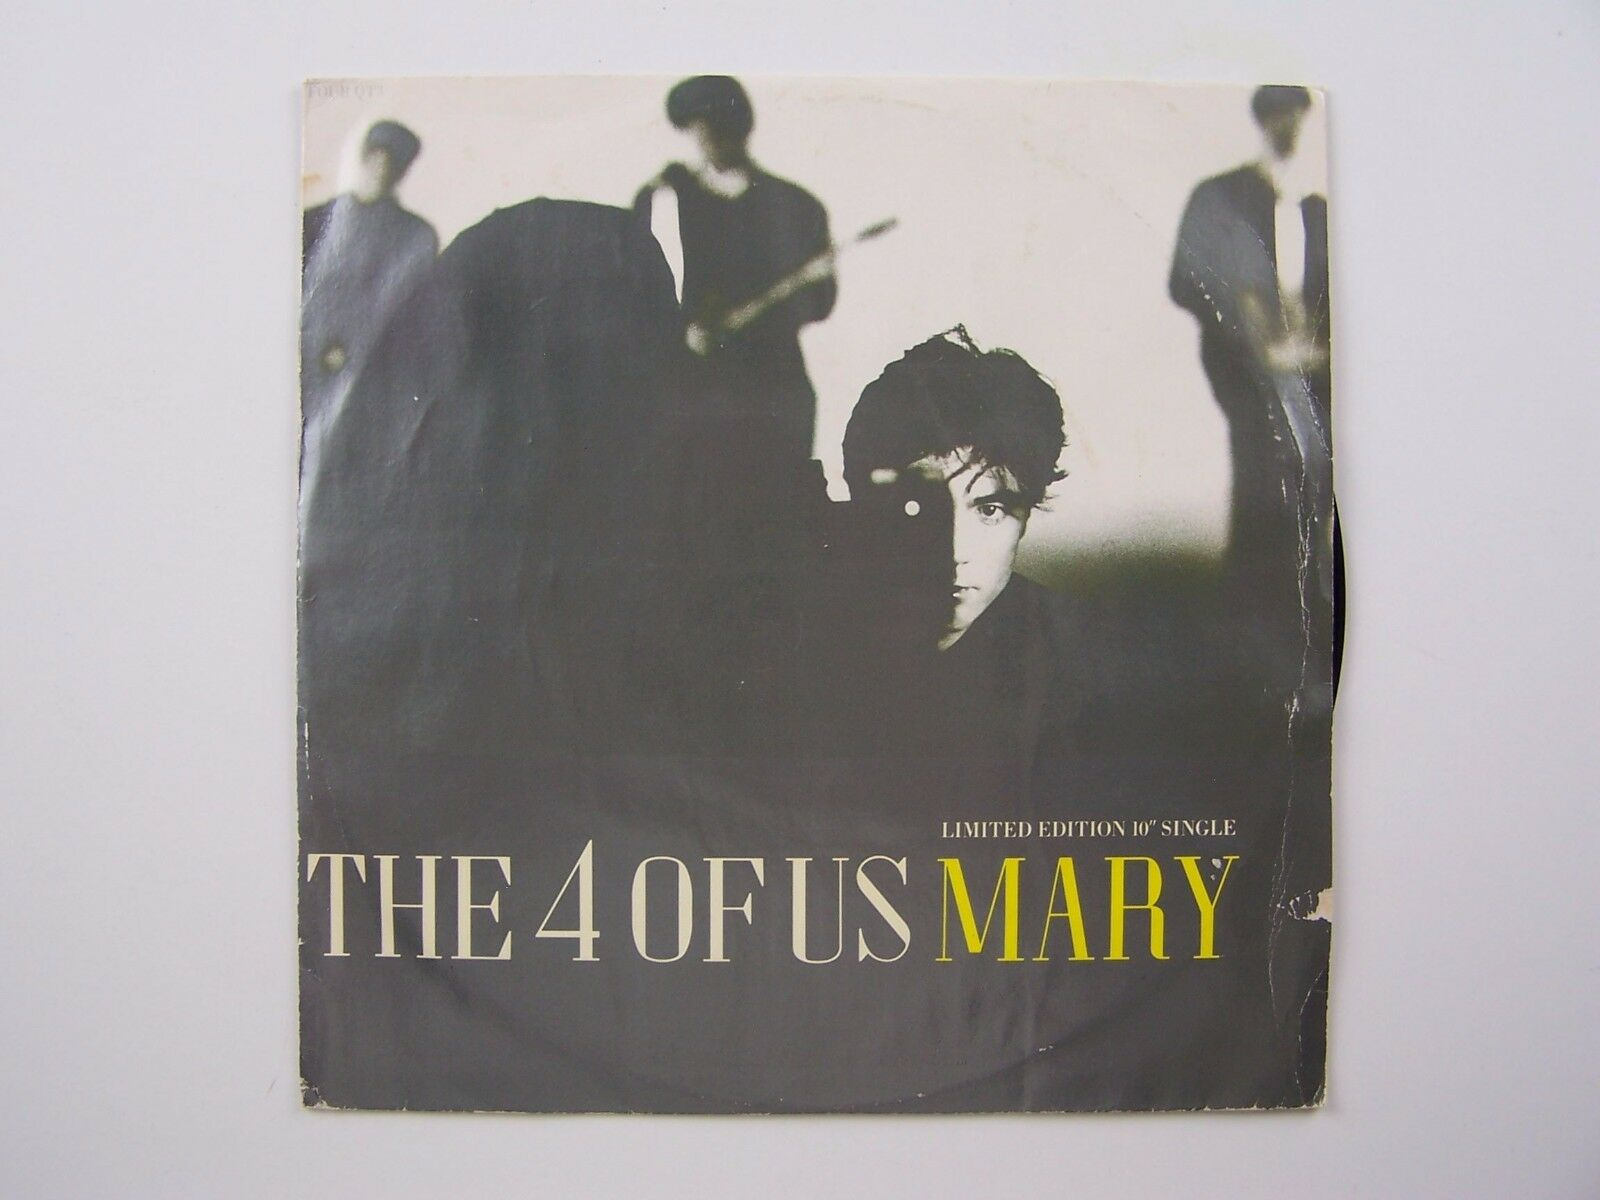 The 4 Of Us - Mary Vinyl EP Record Four QT3